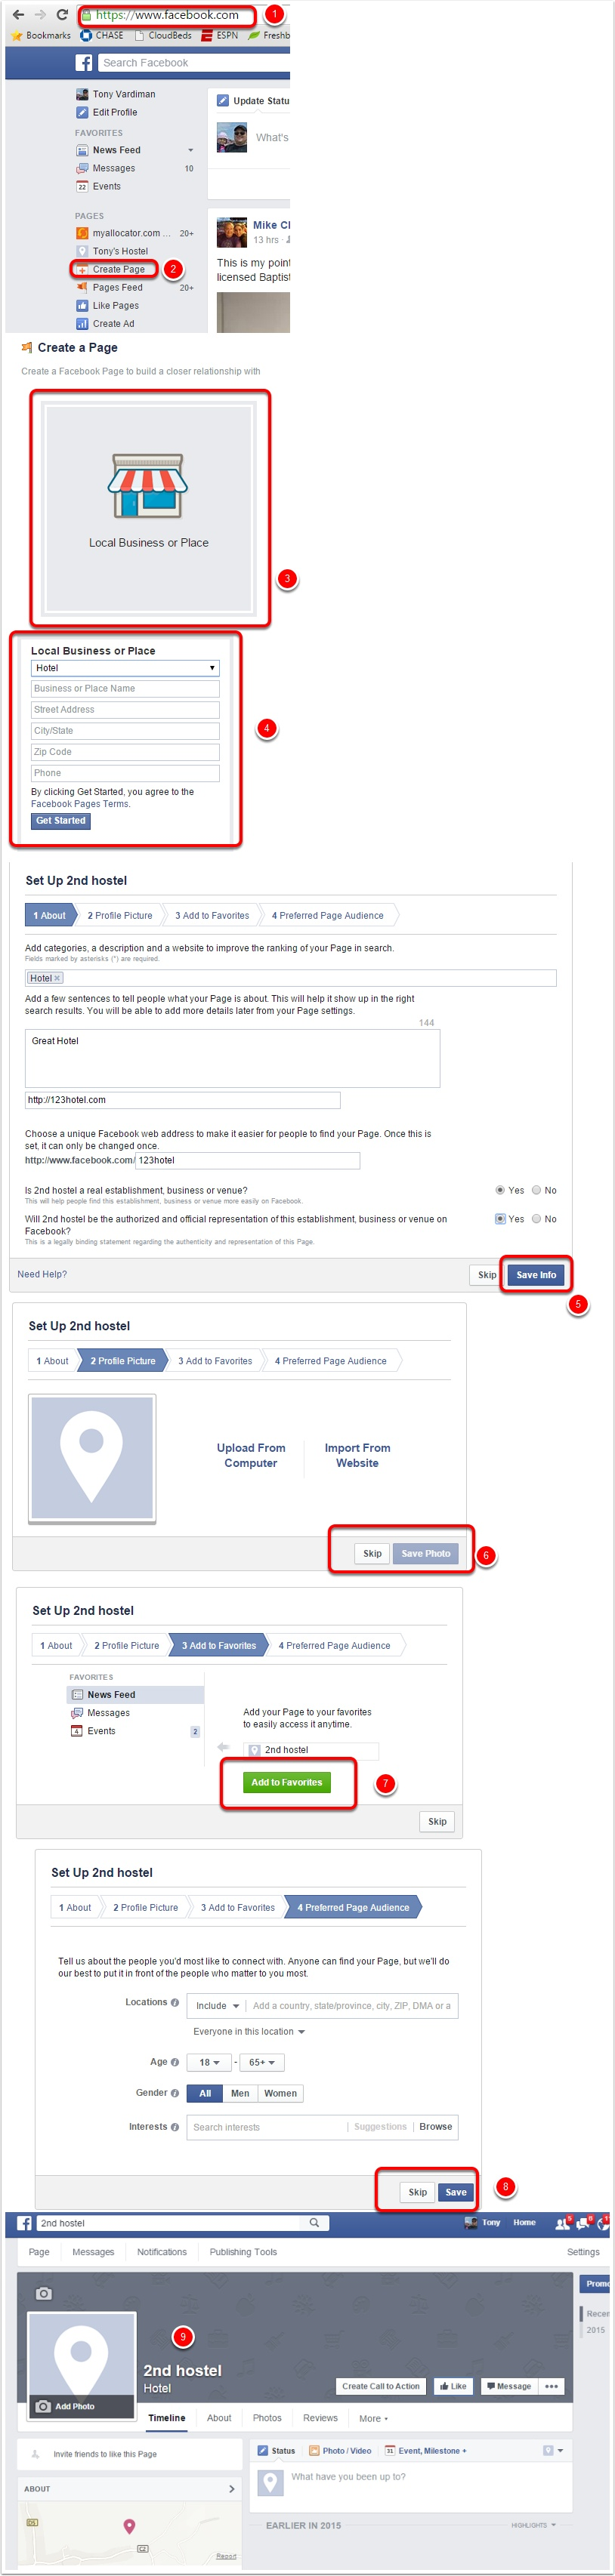 If you don't have a Facebook Fan Page setup